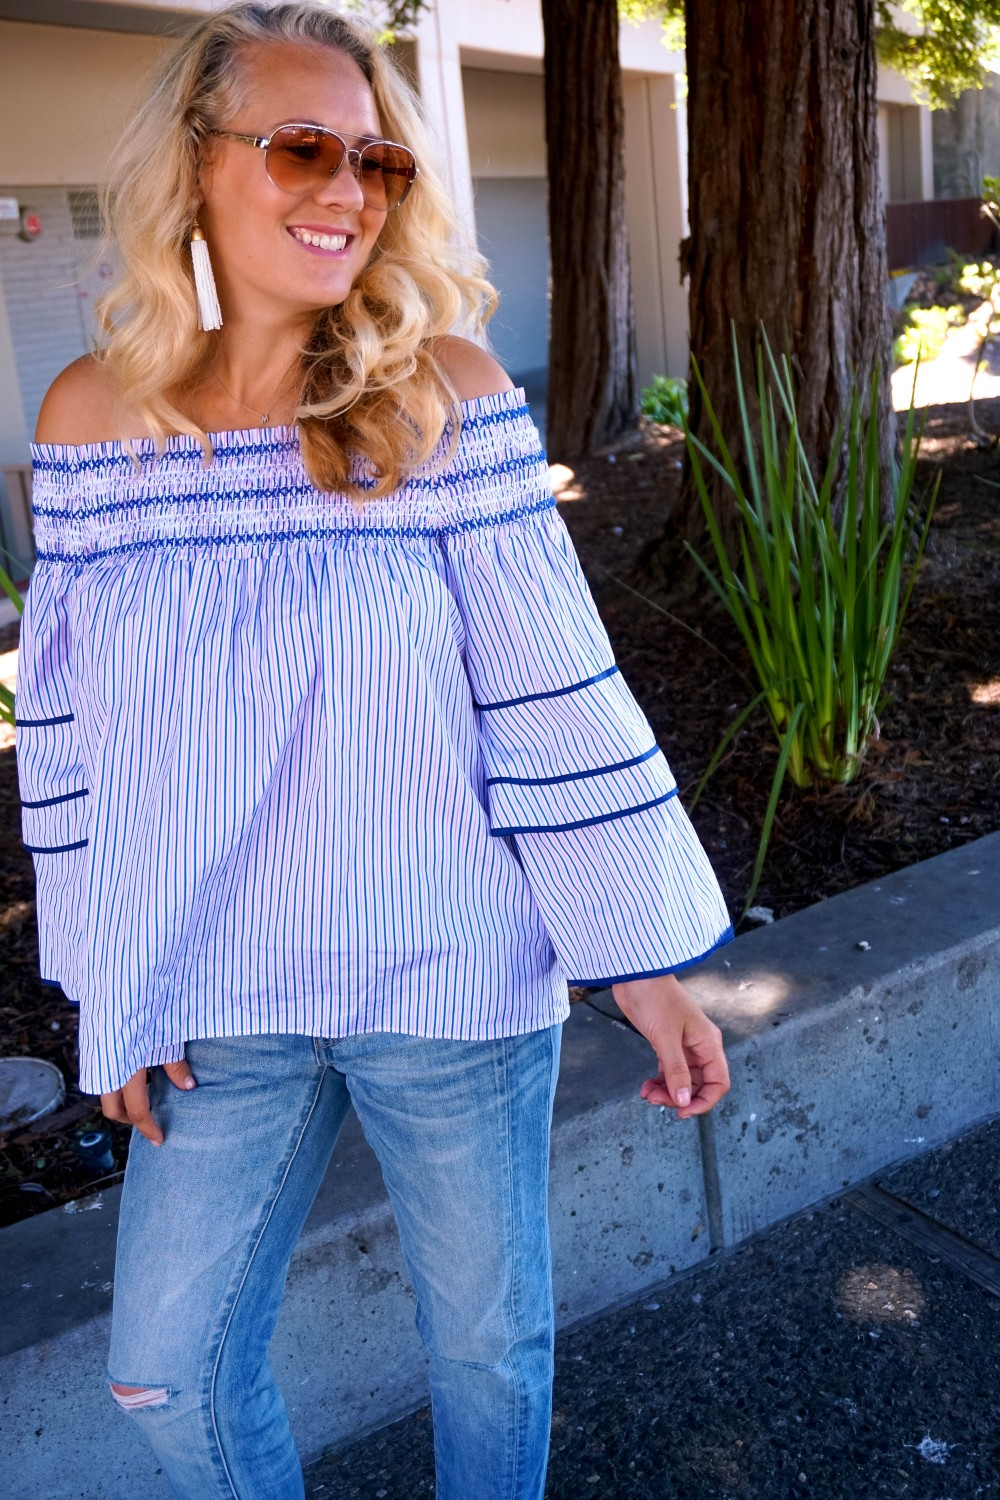 Striped Off-The-Shoulder Poplin Blouse-Parker New York-Summer Style-Outfit Inspiration-Have Need Want-Skinny Boyfriend Jeans-Espadrille Wedges 11